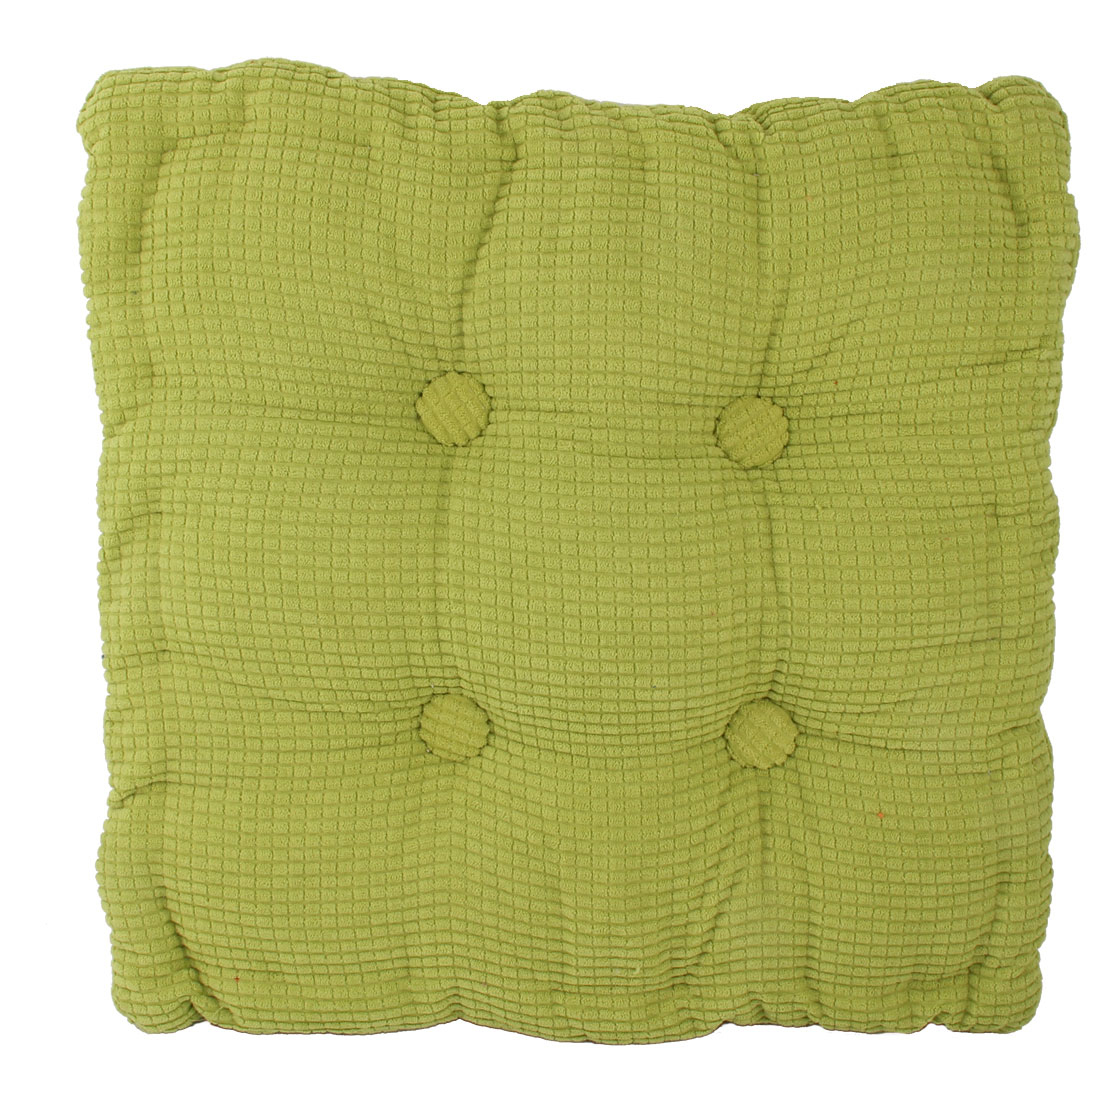 Home Office Corduroy Square Shaped Anti Slip Seat Chair Cushion Pad Cover Grass Green